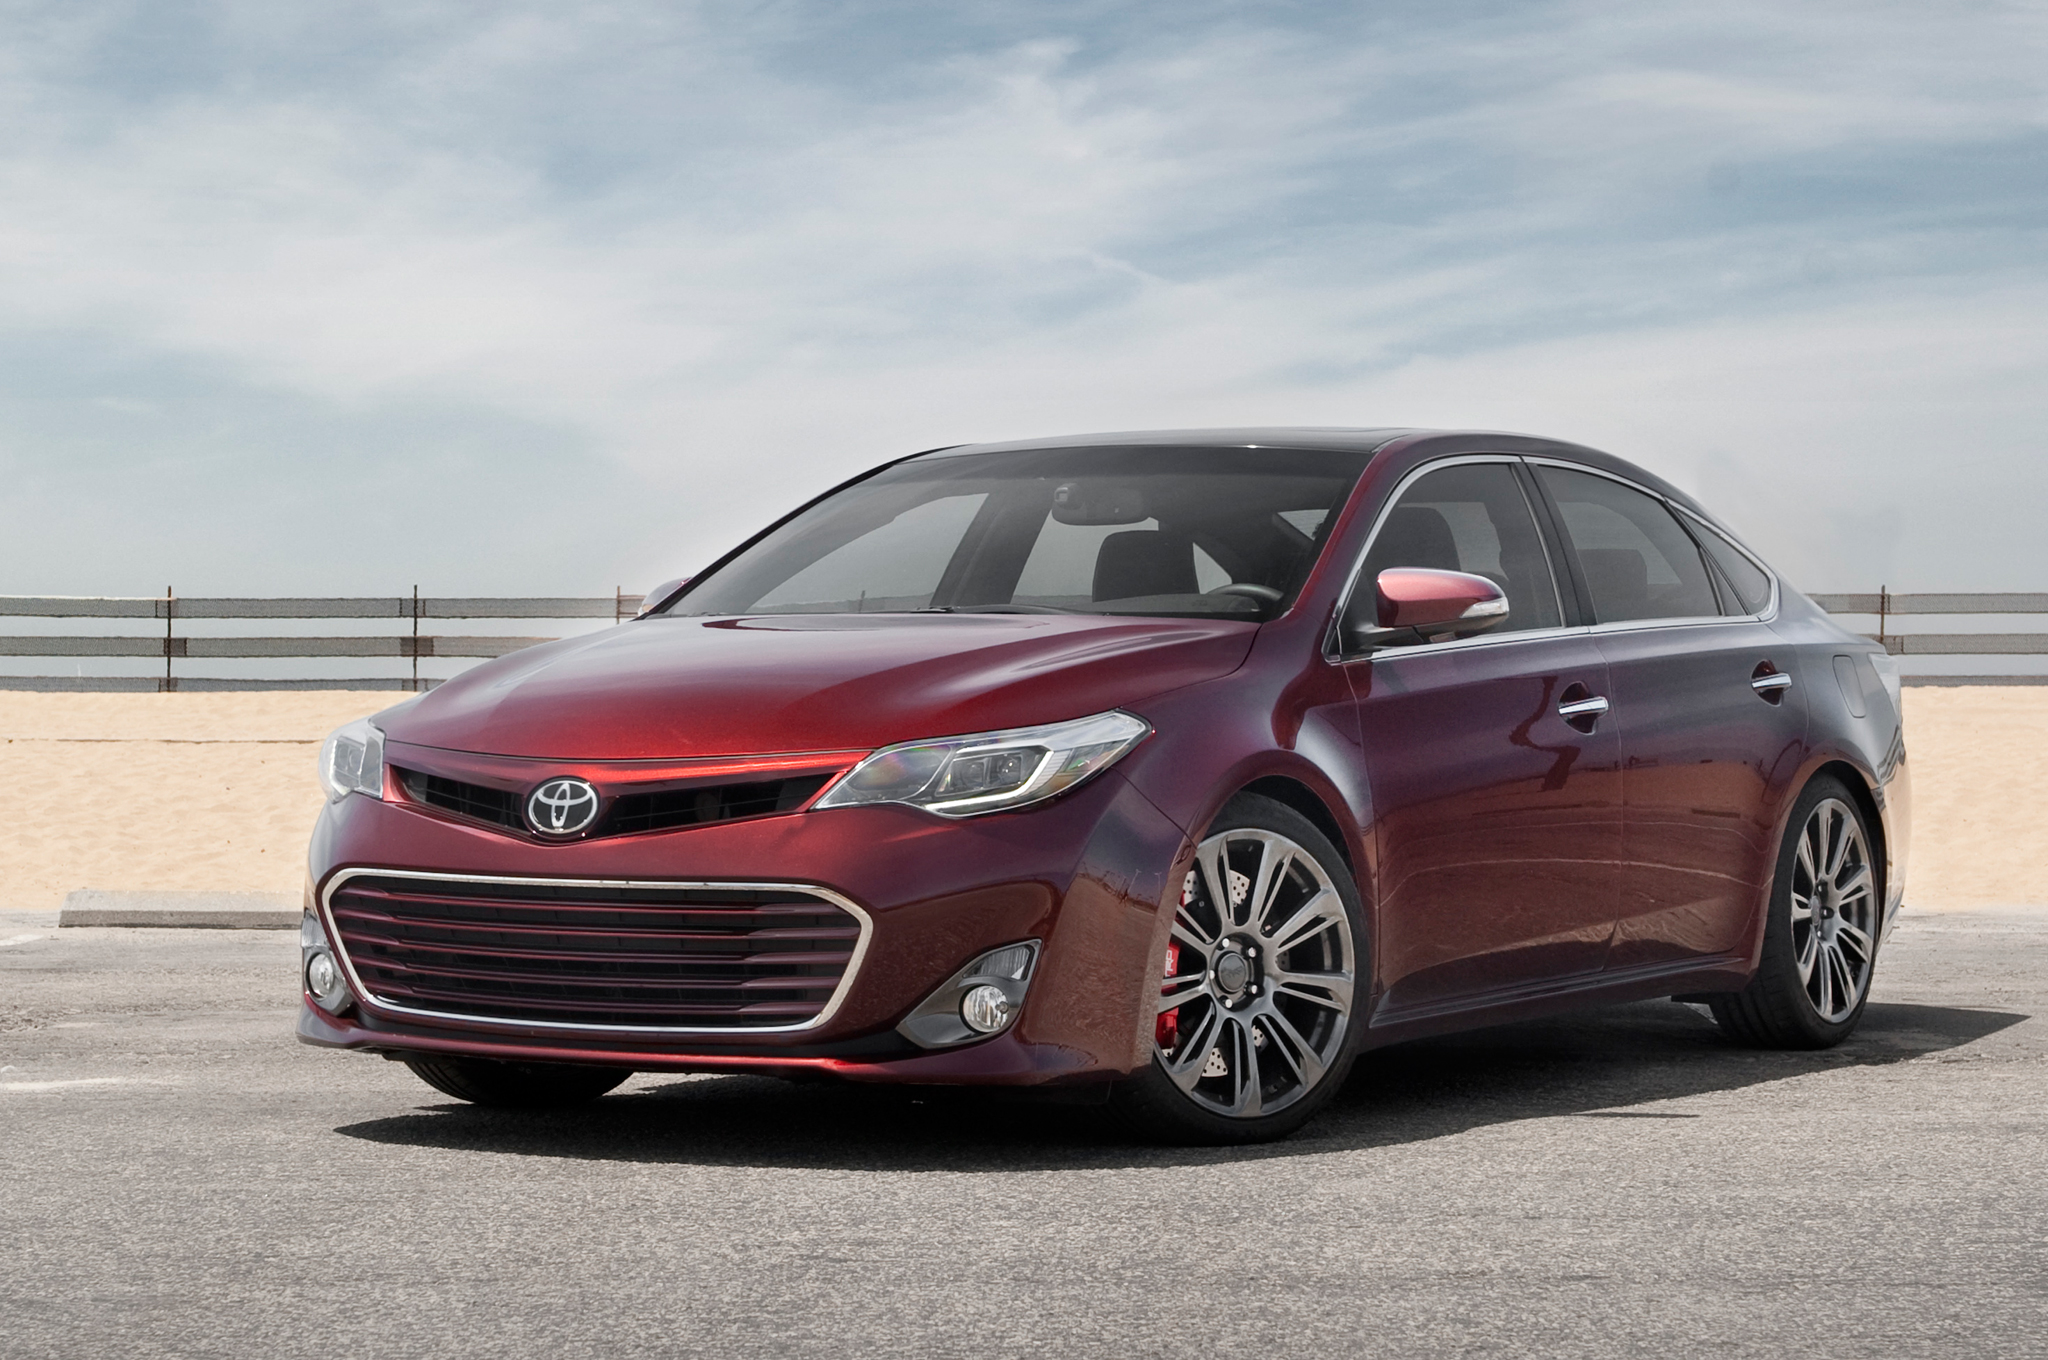 hight resolution of 2013 toyota avalon trd edition first test